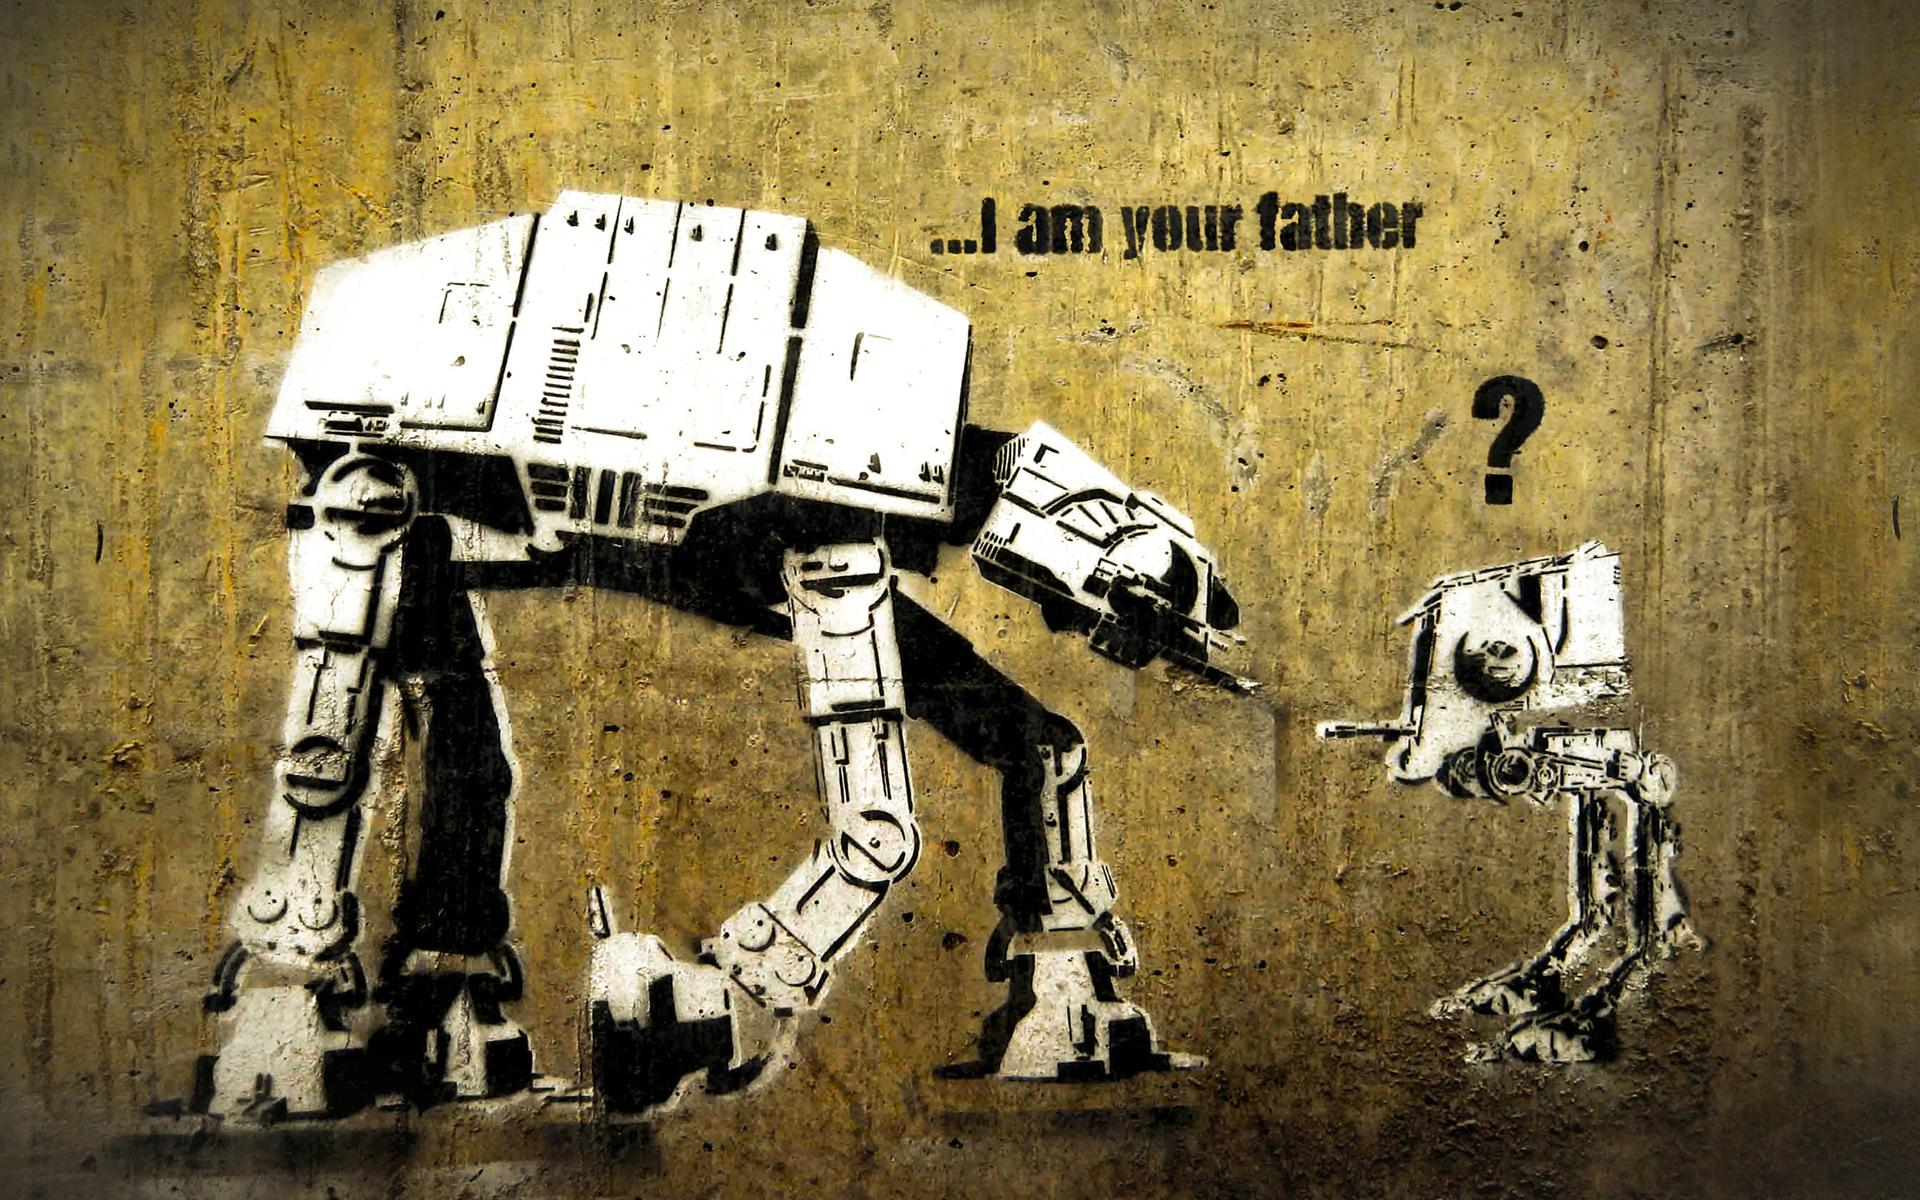 Free Download Comic Star Wars Funny Battle Droids Father Hd Wallpaper 22693 1920x1200 For Your Desktop Mobile Tablet Explore 49 Star Wars Droid Wallpaper Star Wars Droid Wallpaper Star